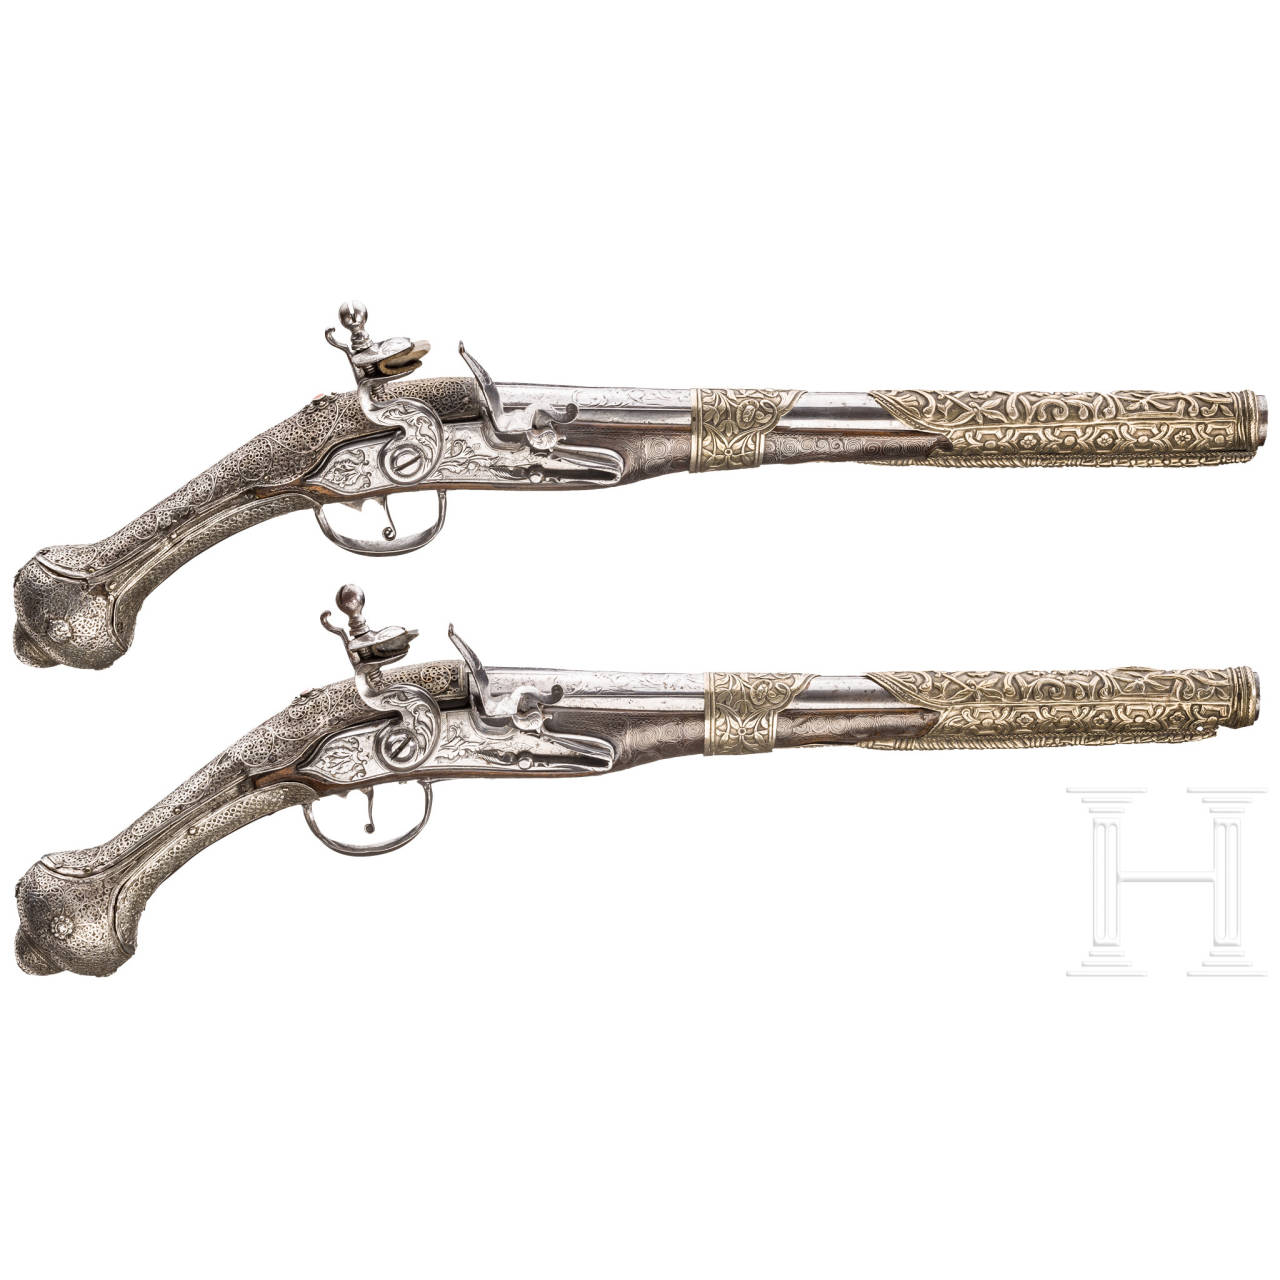 A pair of Balkan Turkish flintlock pistols, embellished with silver filigree, dated 1802